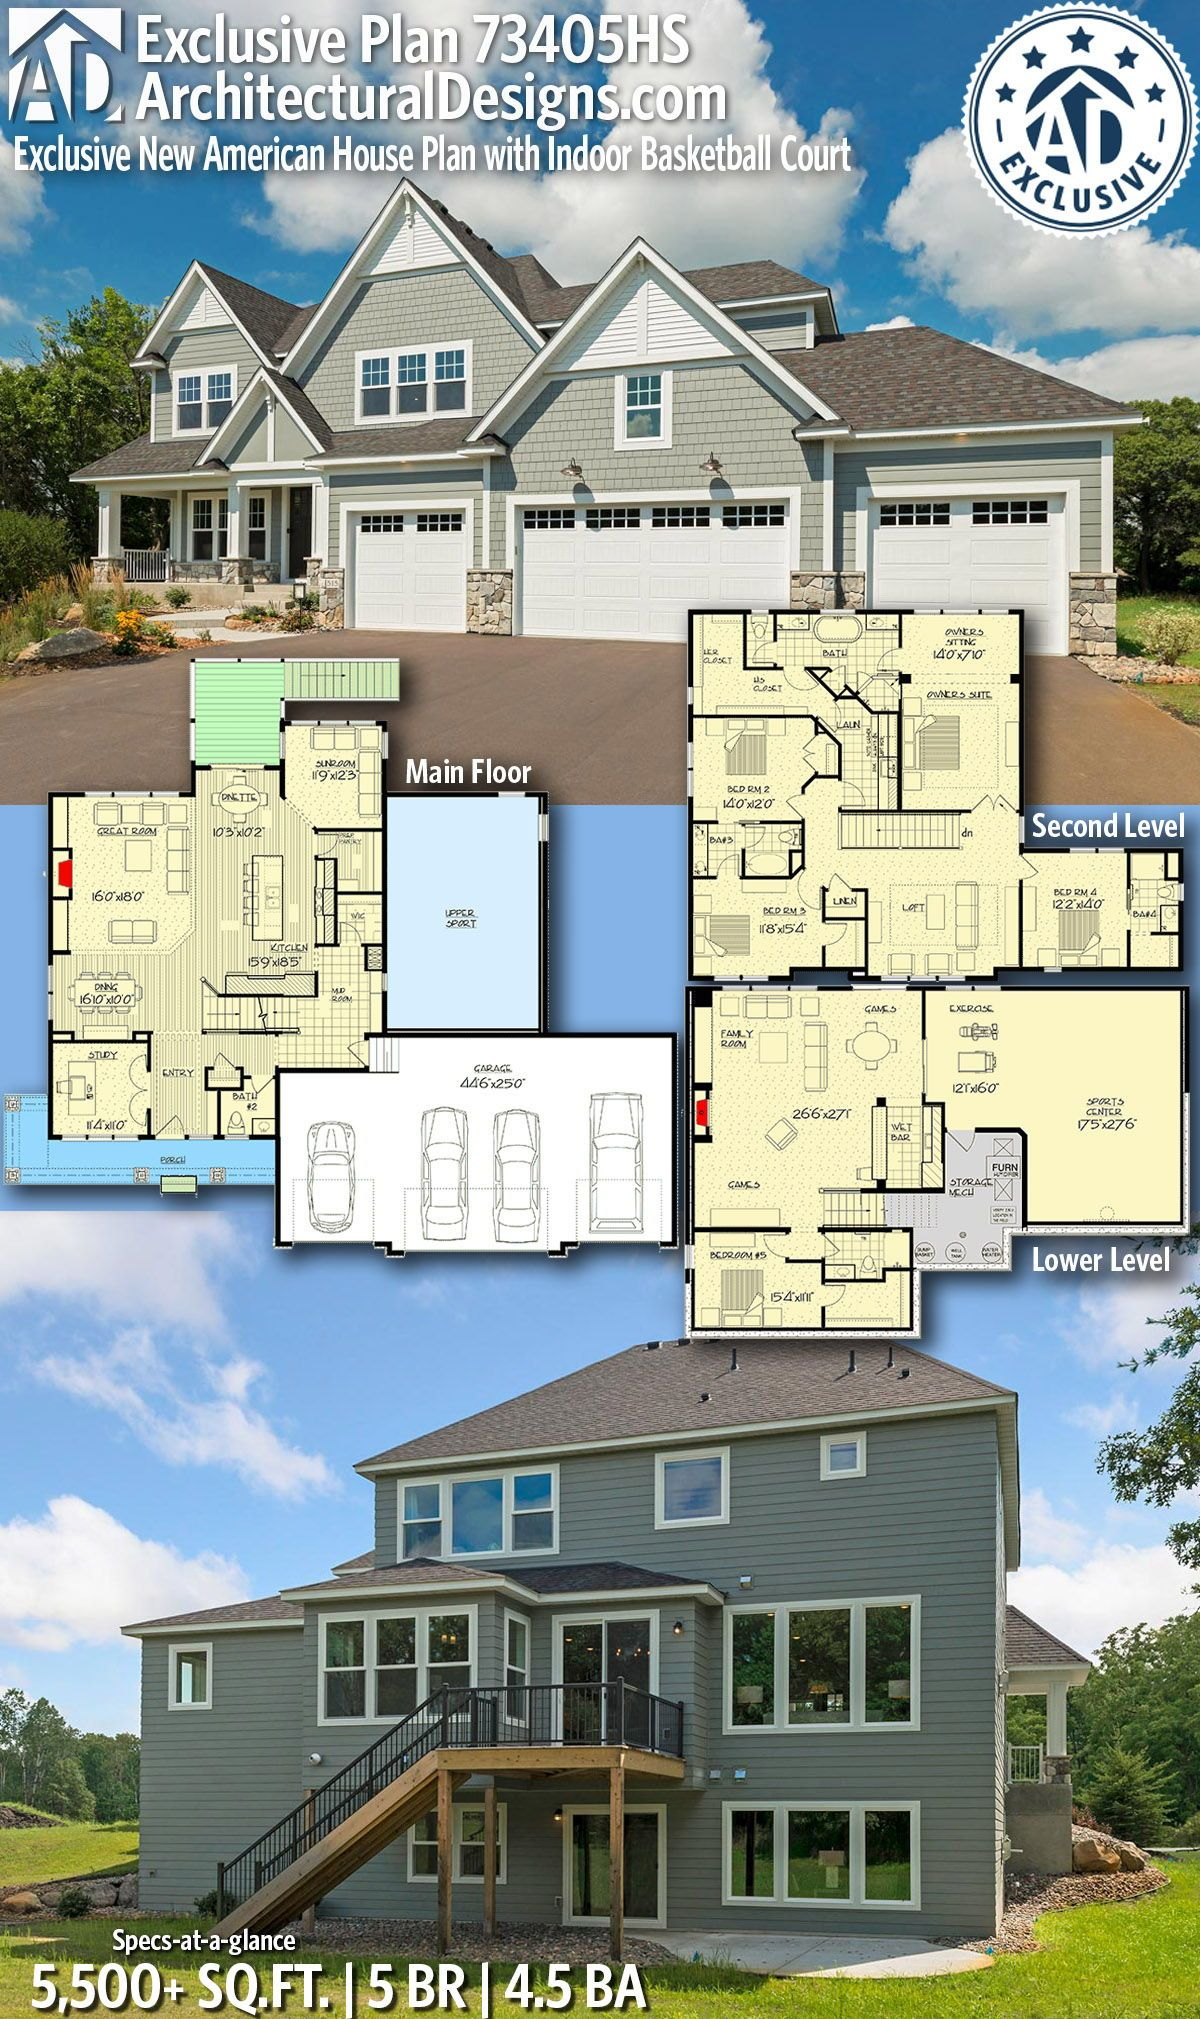 Plan 73405hs Exclusive New American House Plan With Indoor Basketball Court House Plans Craftsman House Plans Family House Plans